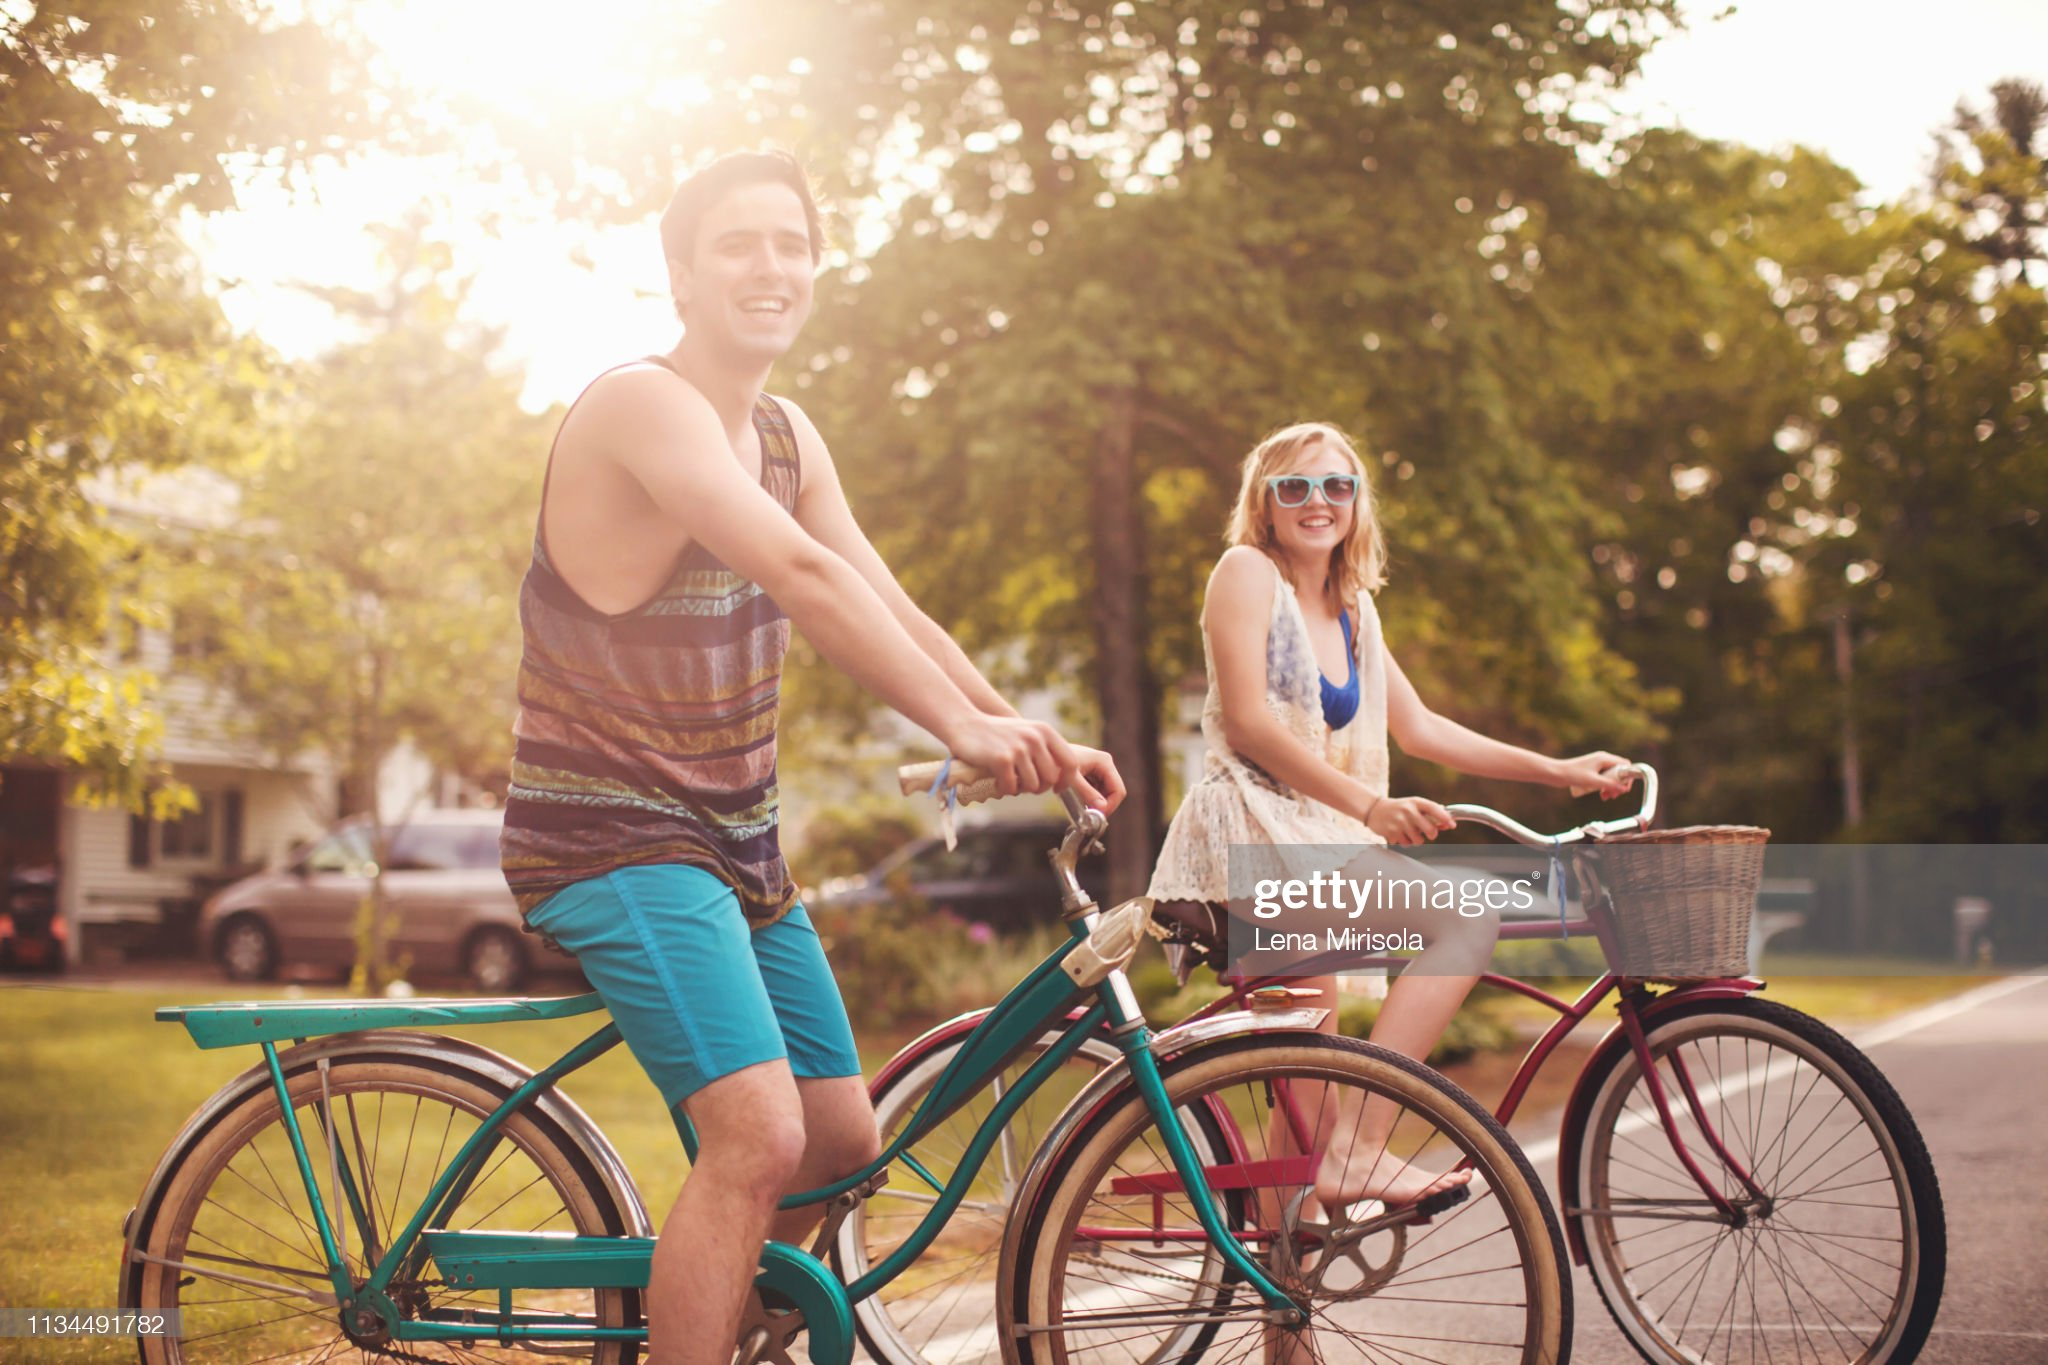 https://media.gettyimages.com/photos/young-couple-on-bikes-picture-id1134491782?s=2048x2048